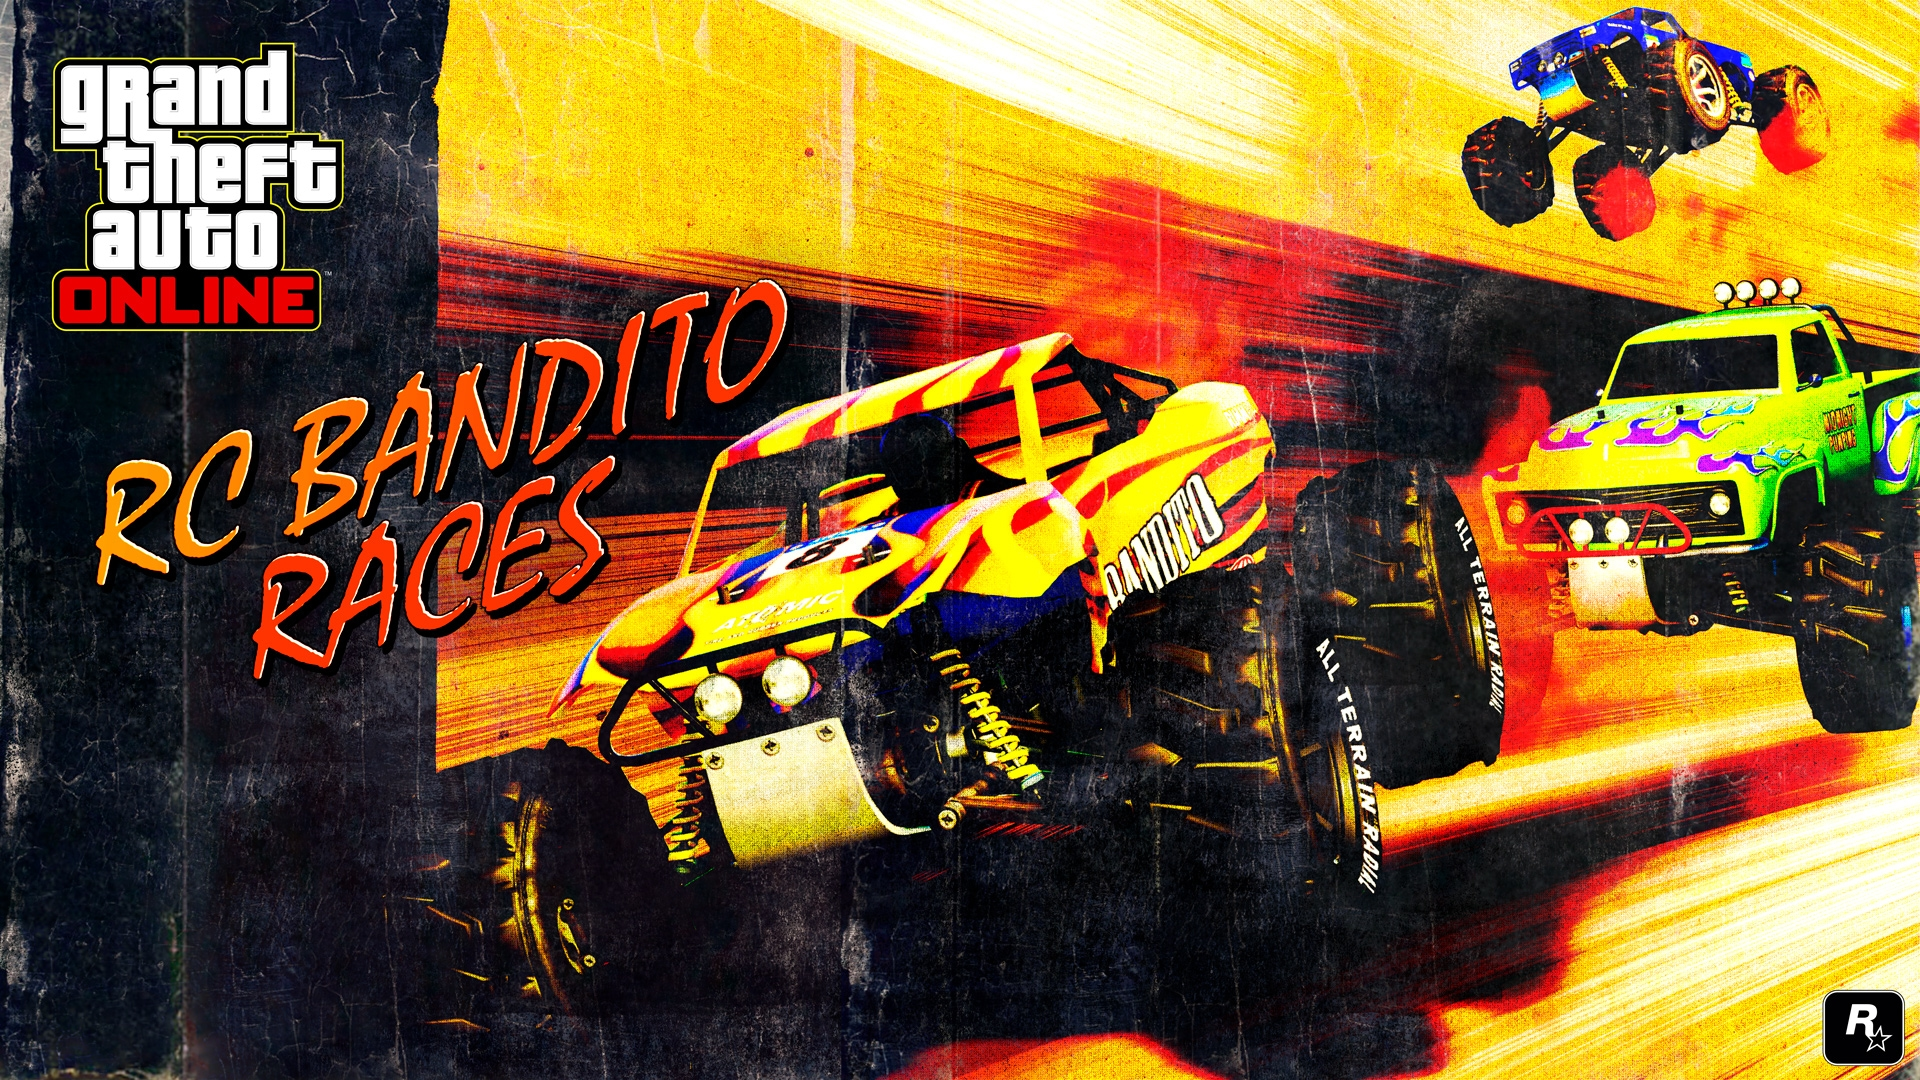 The RC Bandito with Eight All-New Races - Rockstar Games